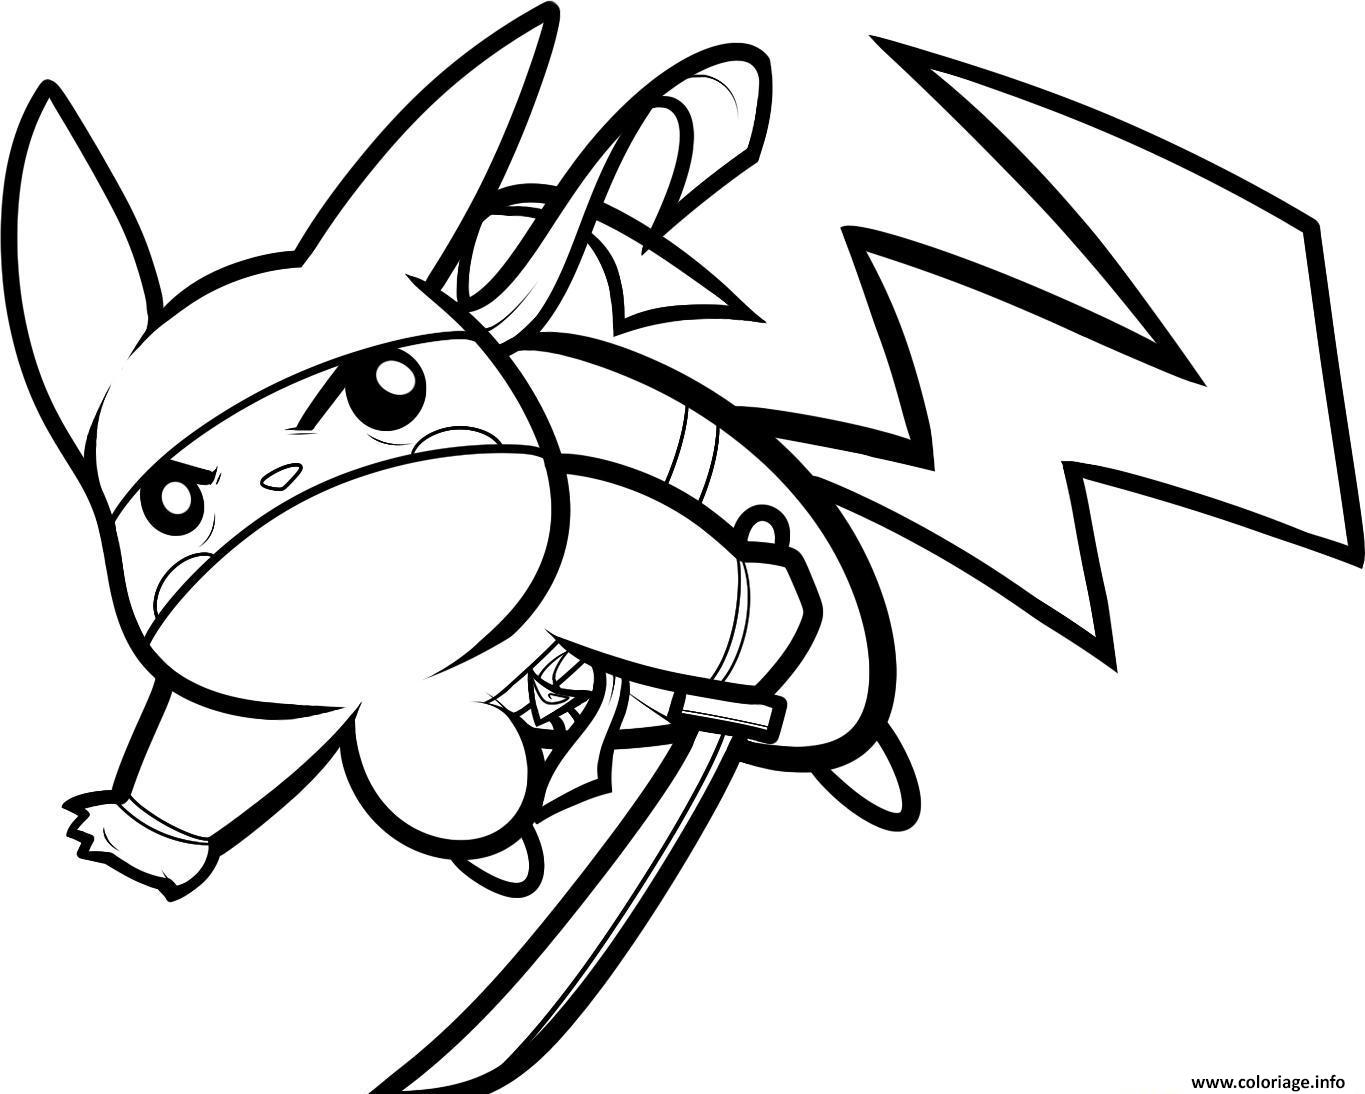 Coloriage Pikachu En Mode Ninja Pokemon